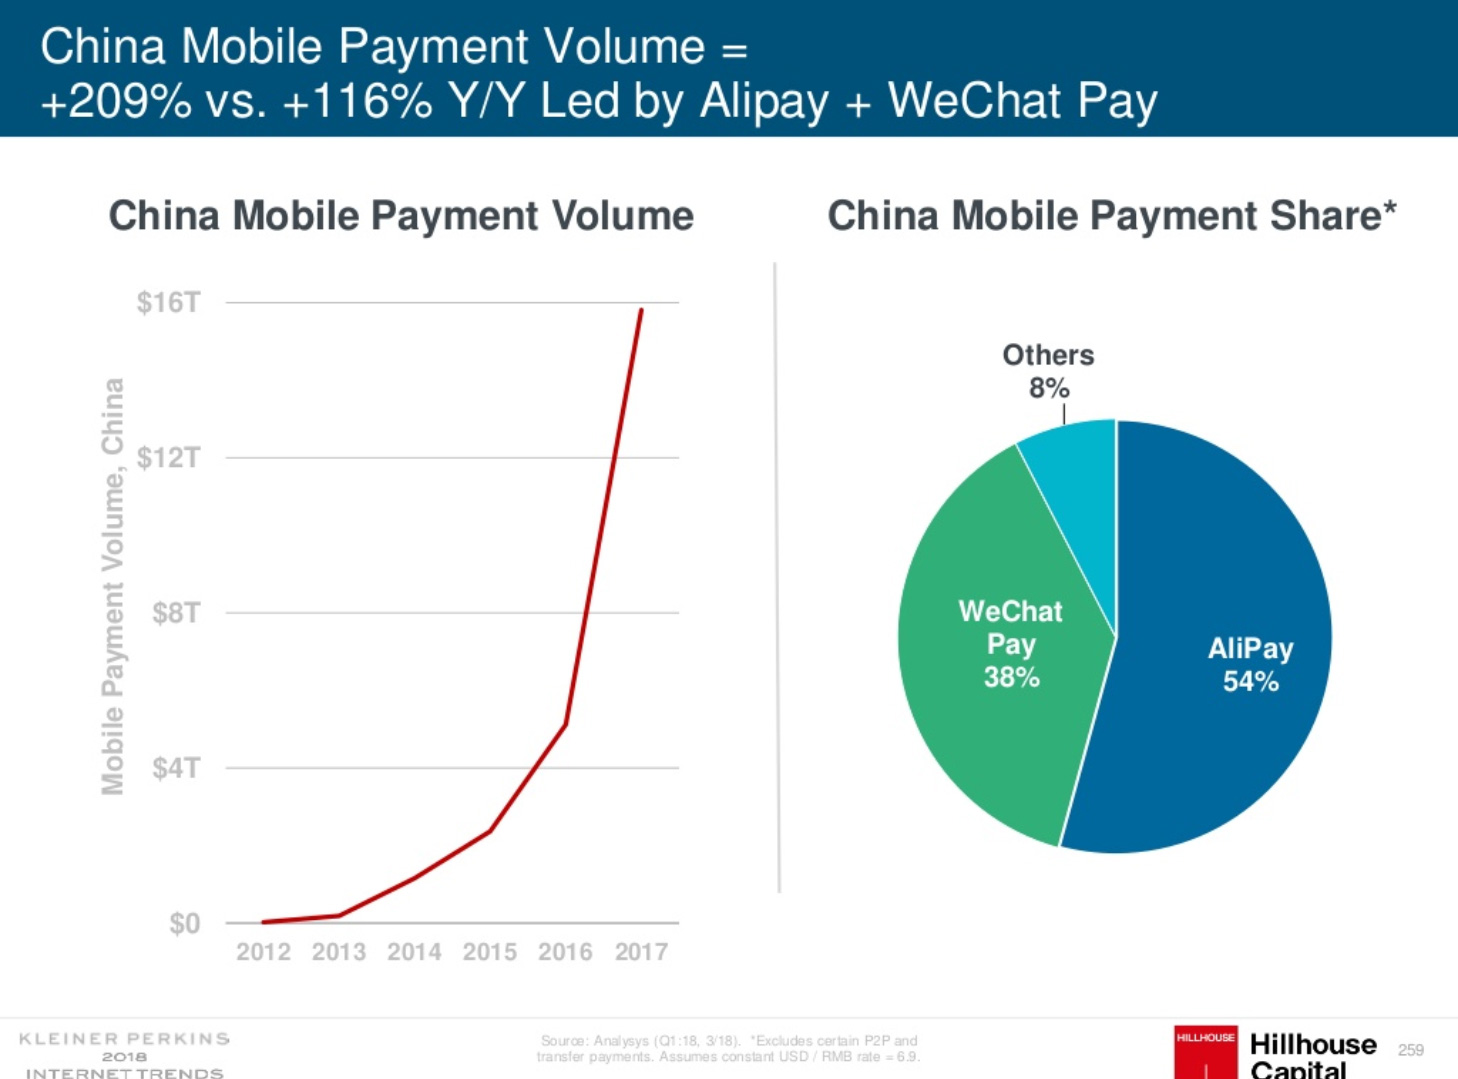 Increasing mobile payments in China 2018